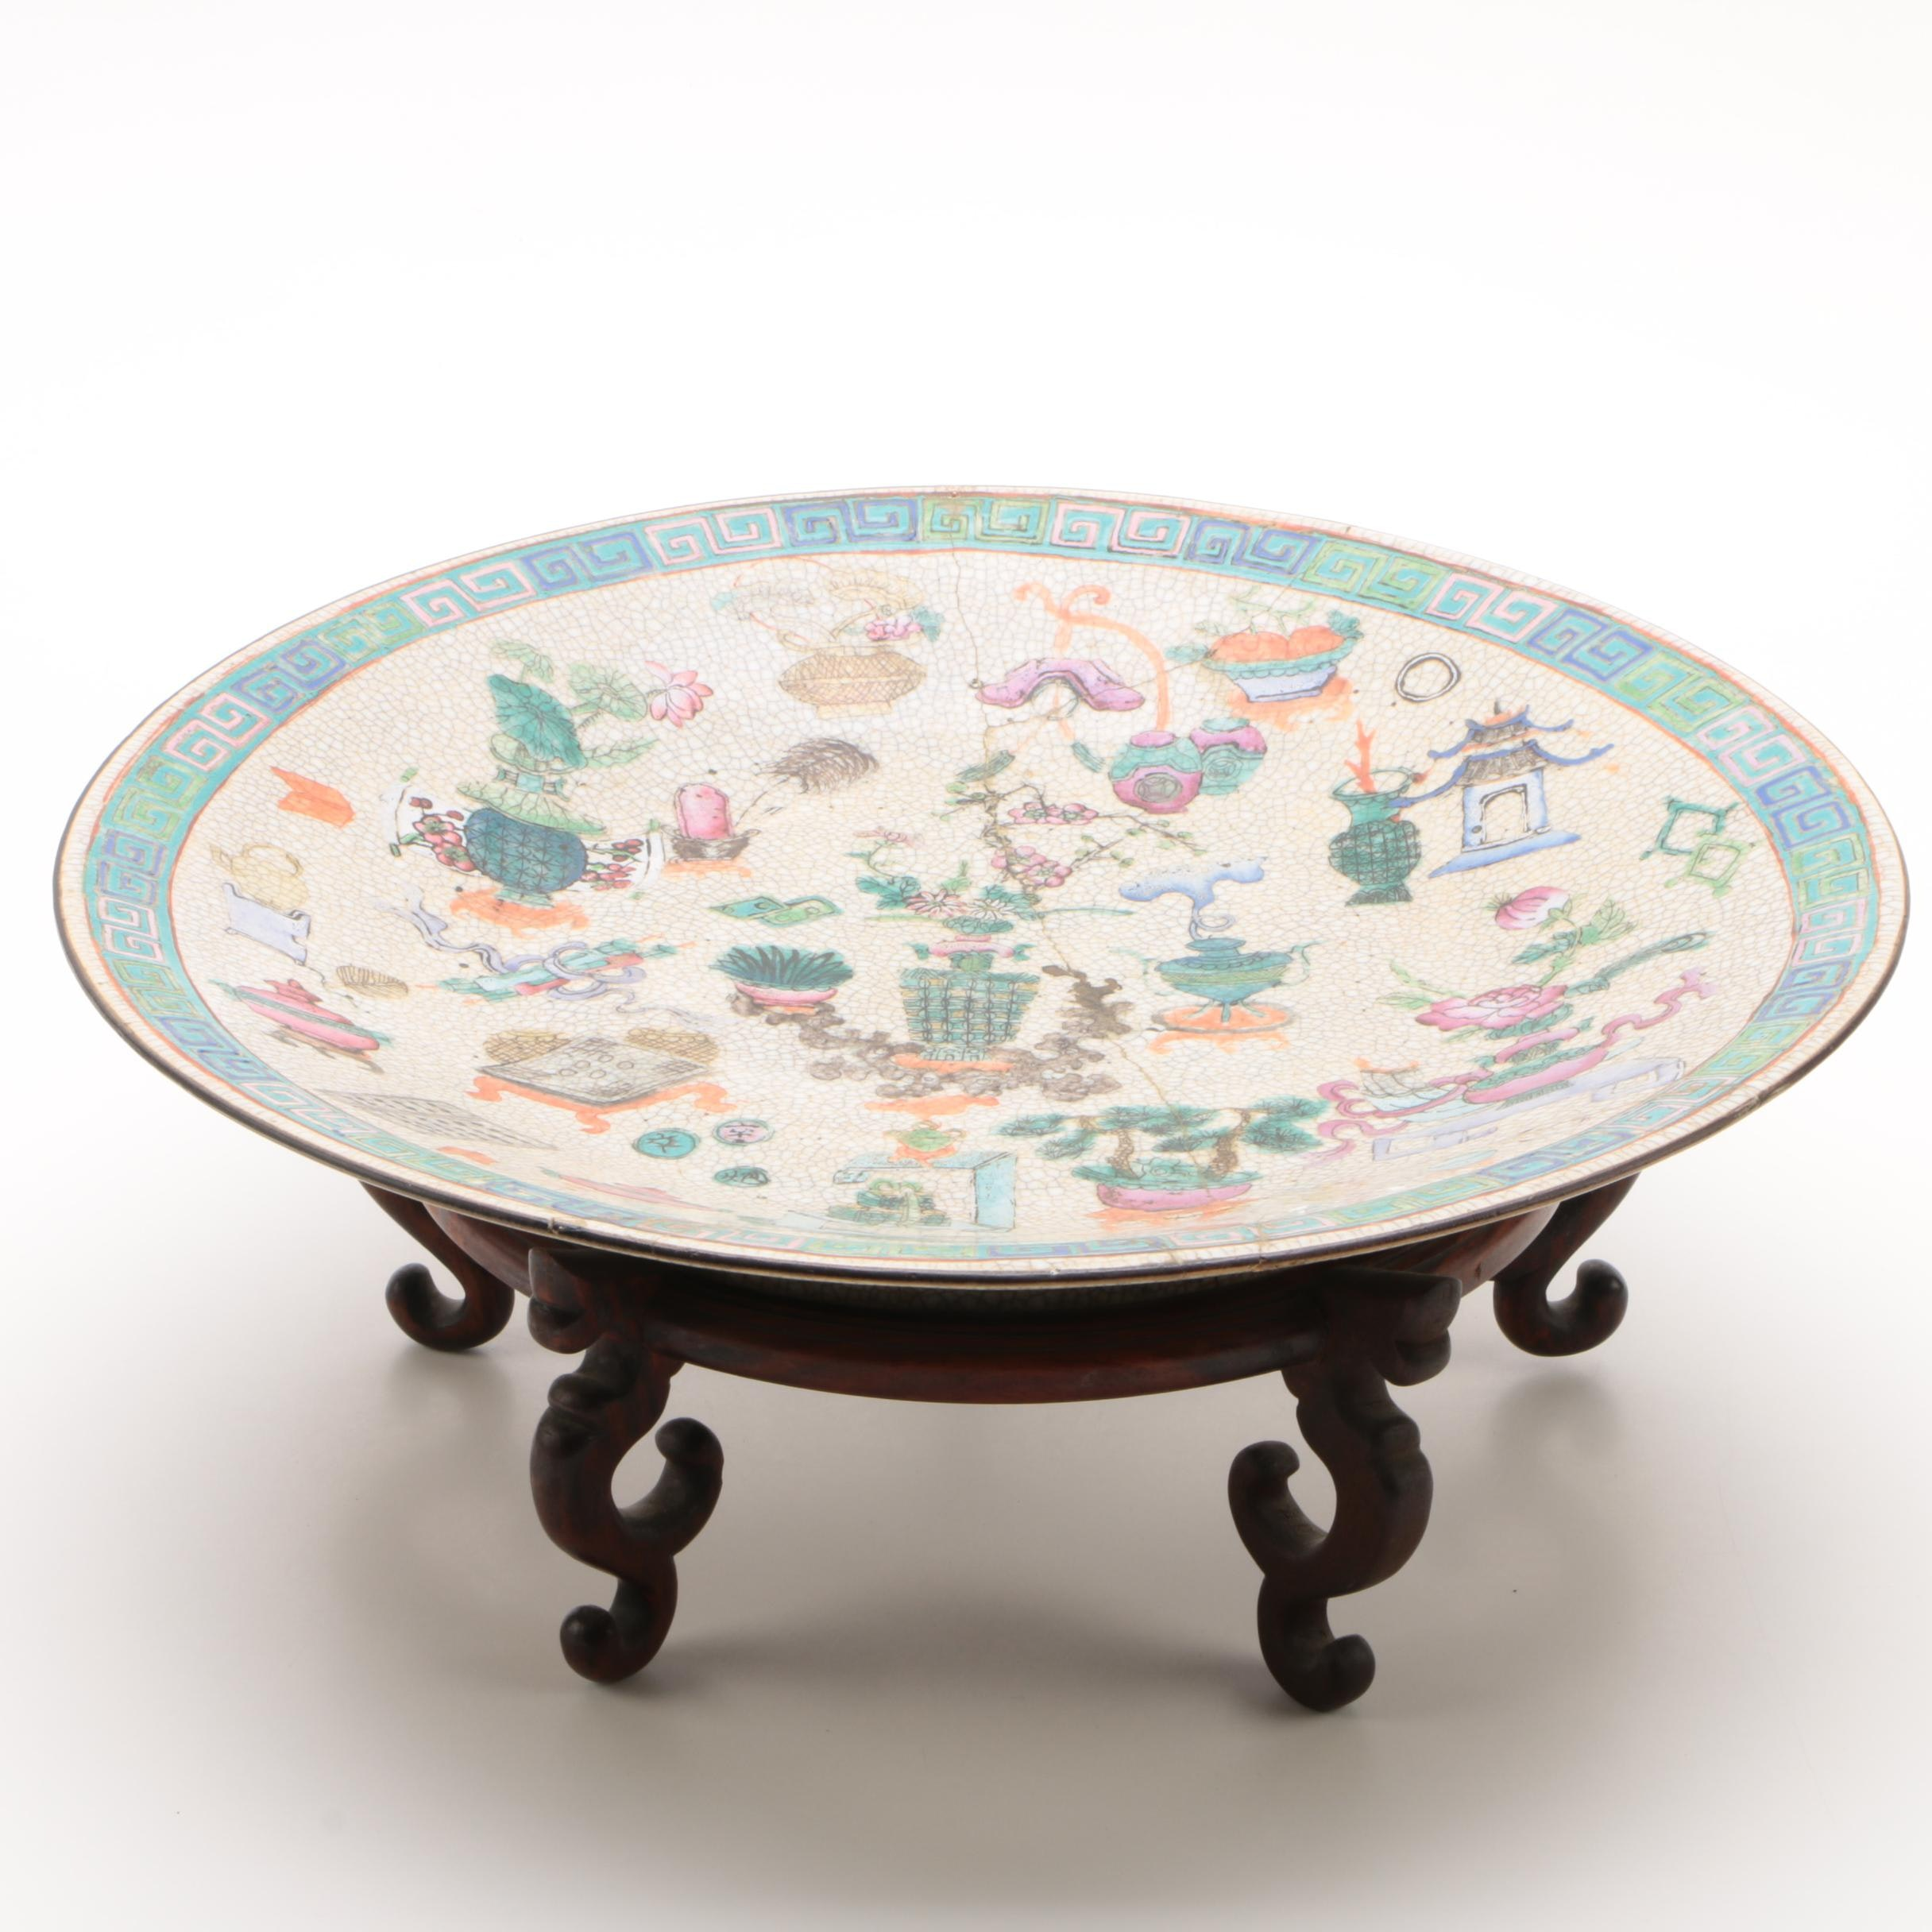 Chinese Hand-Painted Porcelain Serving Bowl with Wooden Stand